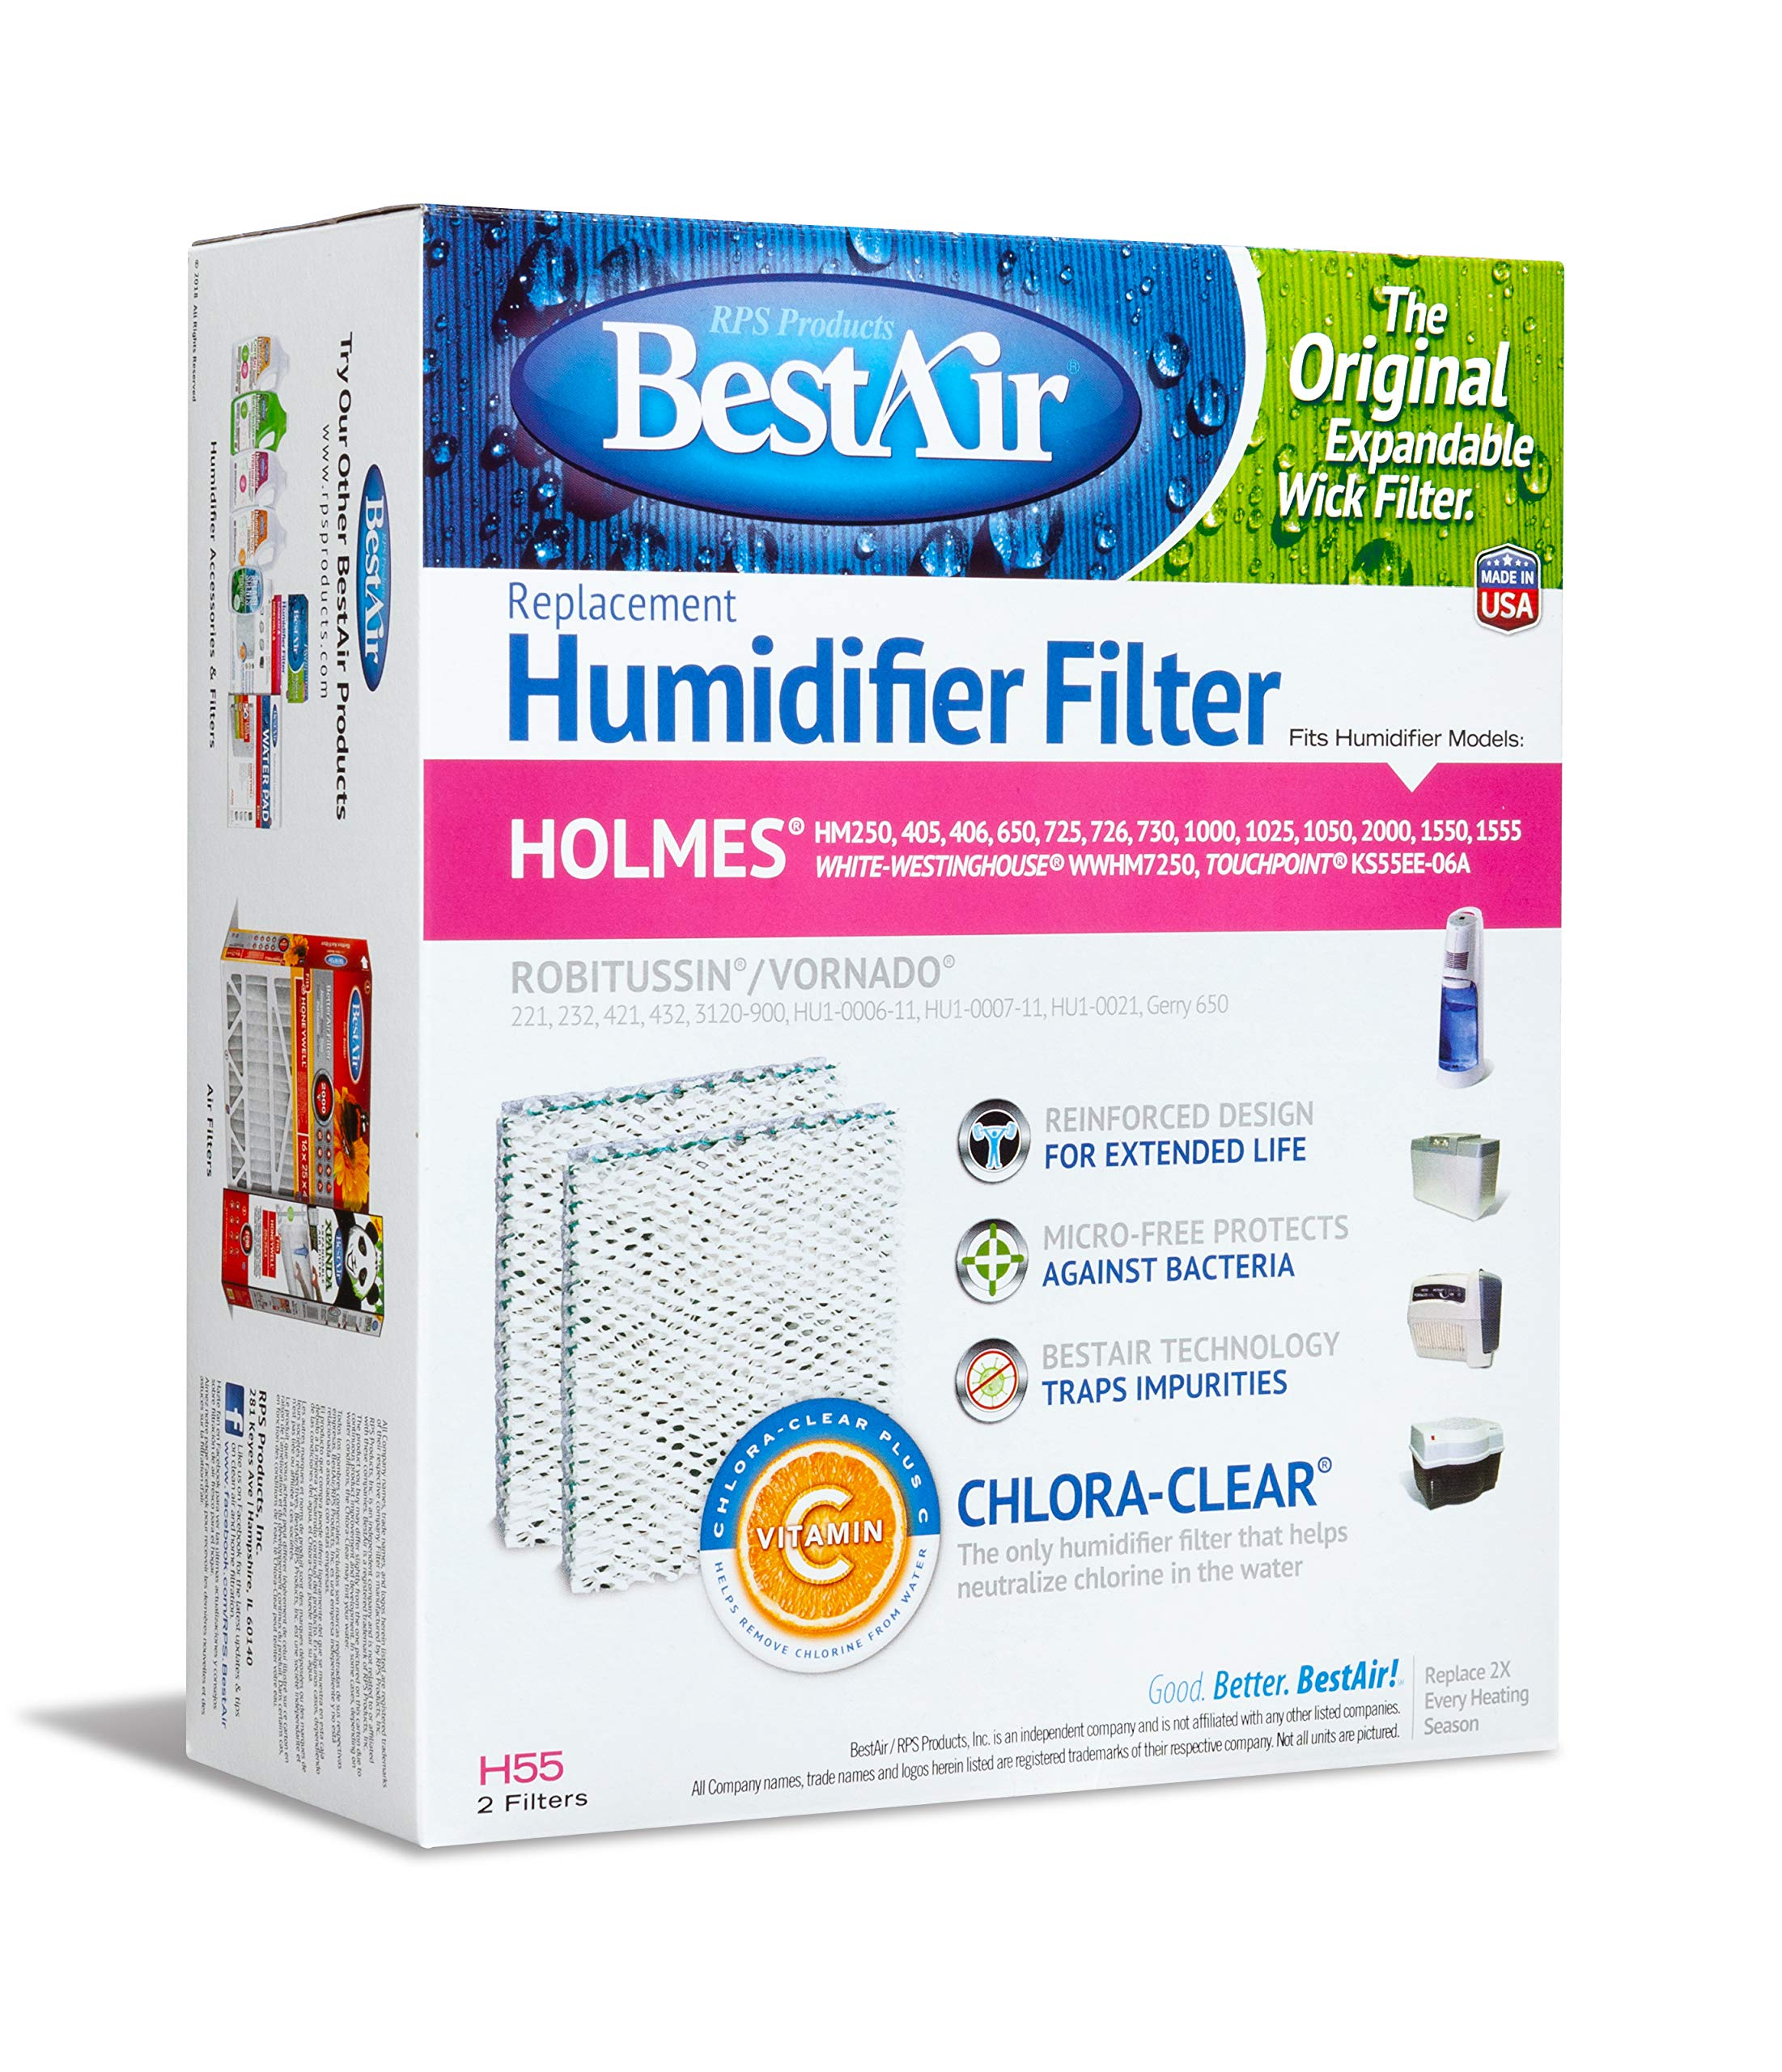 BestAir H55 Extended Life Humidifier Replacement Paper Wick Humidifier Filter, For Holmes, Vornado, Gerry, and Touch Point Models, 7.5'' x 3.5'', 9.125'', 6 Pack (12 Filters) by BestAir